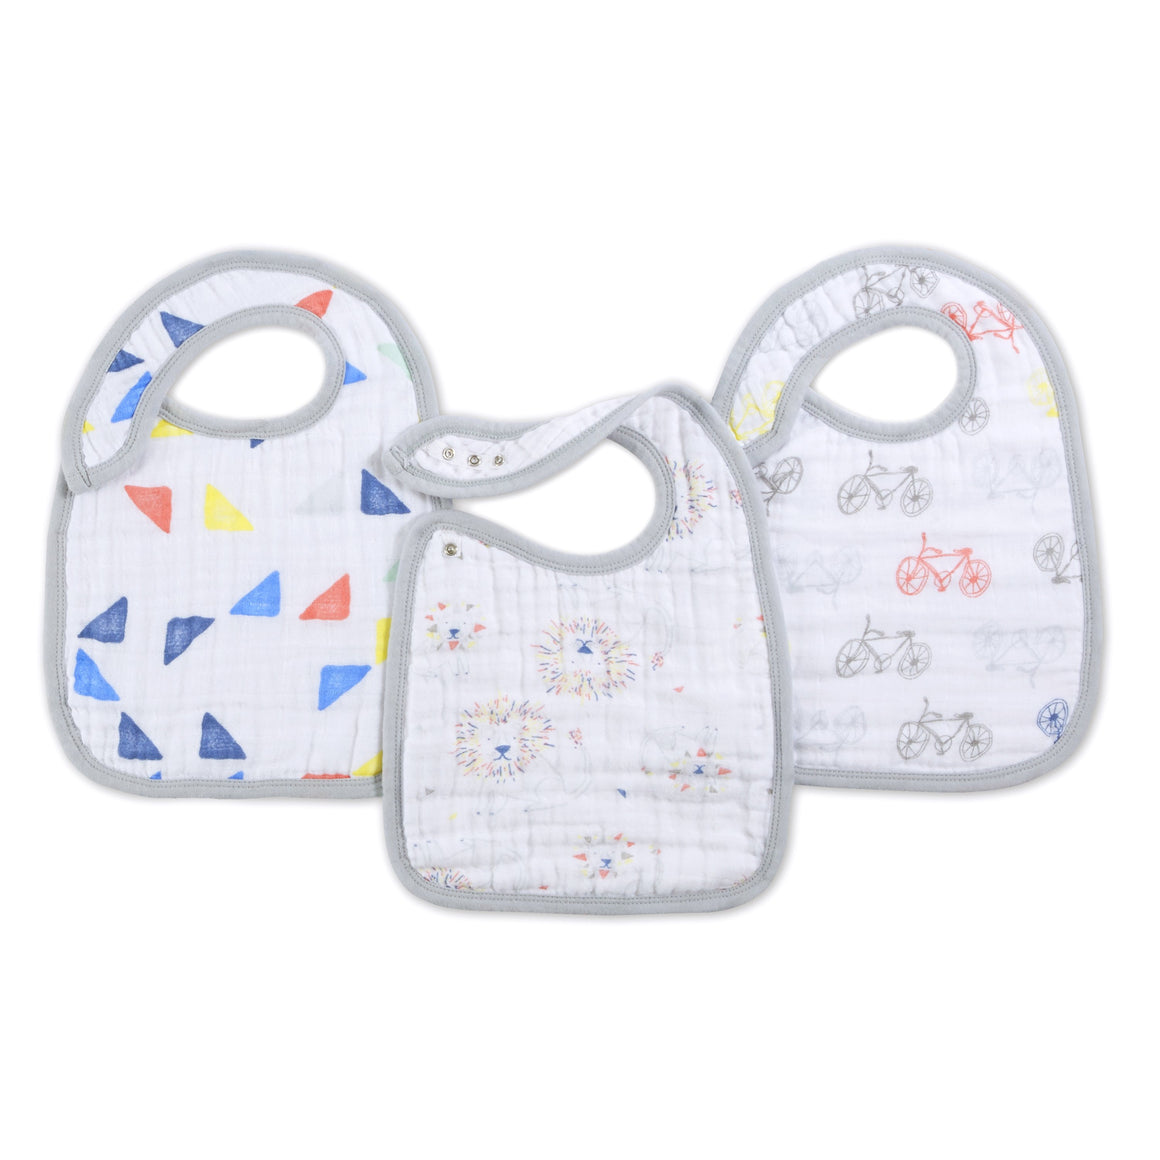 aden + anais leader of the pack 3-pack classic snap bibs